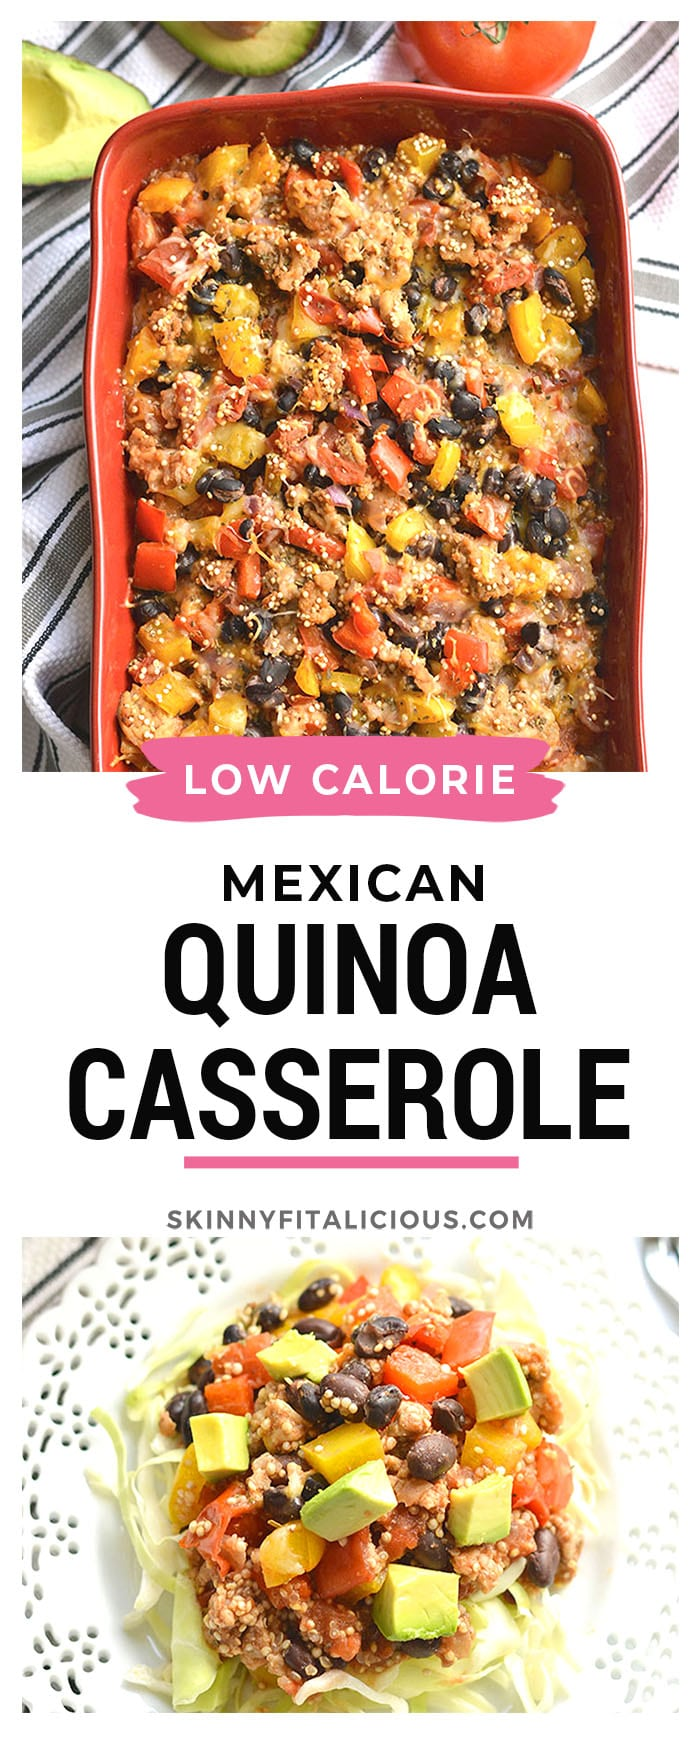 Mexican Quinoa Casserole! Made with black beans, chicken and array of vegetables, this is tasty dish is one the entire family will love! Gluten Free + Low Calorie!